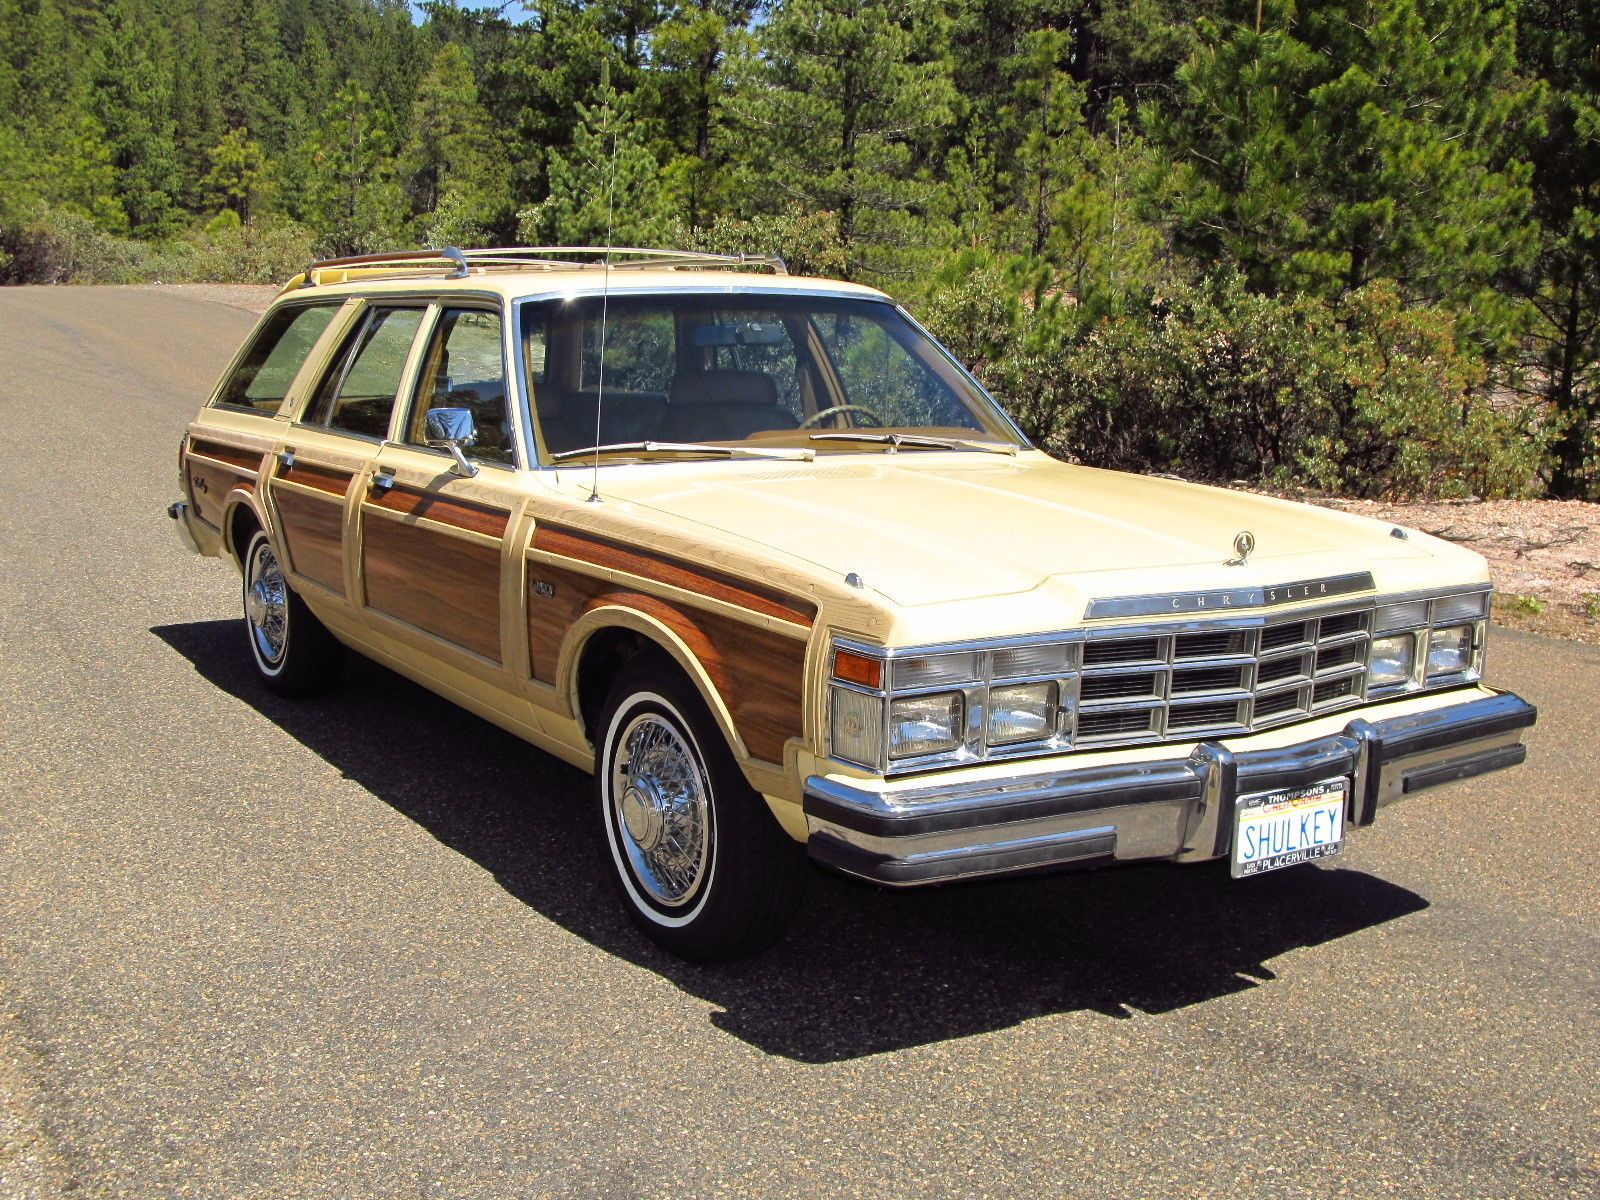 2018 chrysler lebaron.  chrysler 1978 chrysler lebaron town and country with 2018 chrysler lebaron